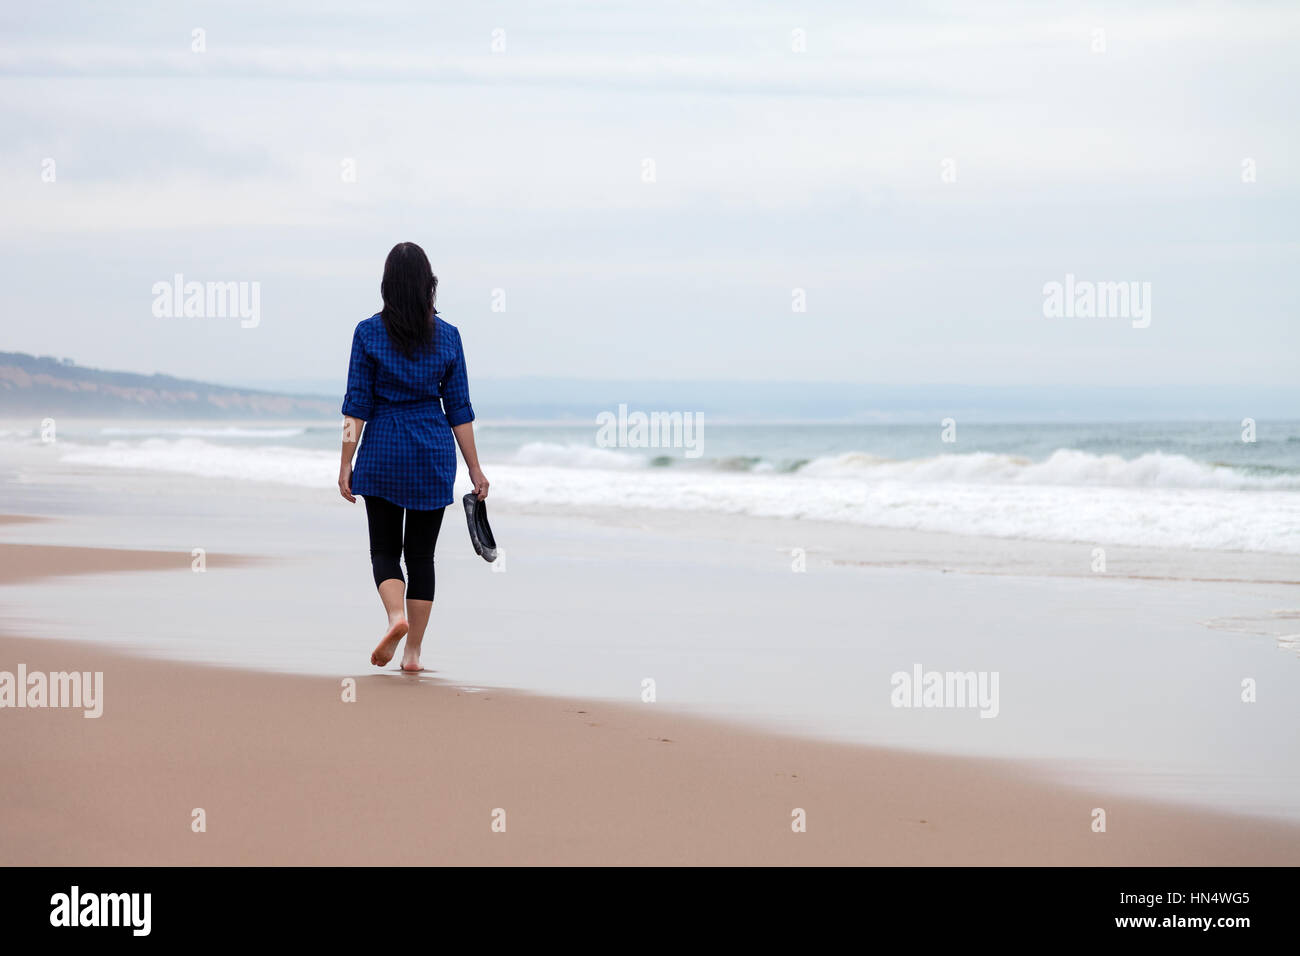 Young woman walking away alone in a deserted beach on an Autumn day / woman beach walking alone lonely sad sadness - Stock Image